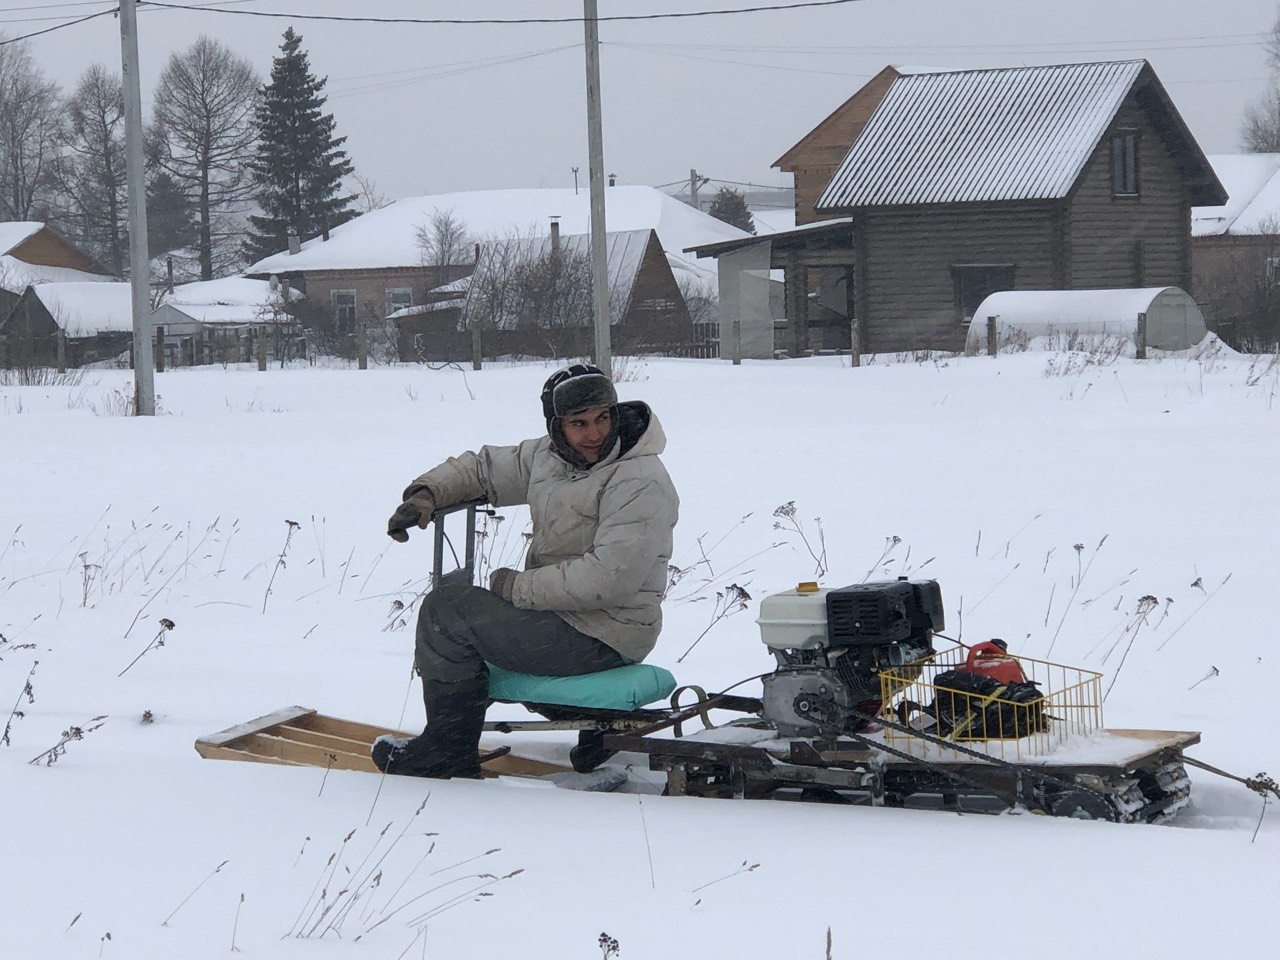 http://www.snowmobile.ru/forum/index.php?attachments/1236922/